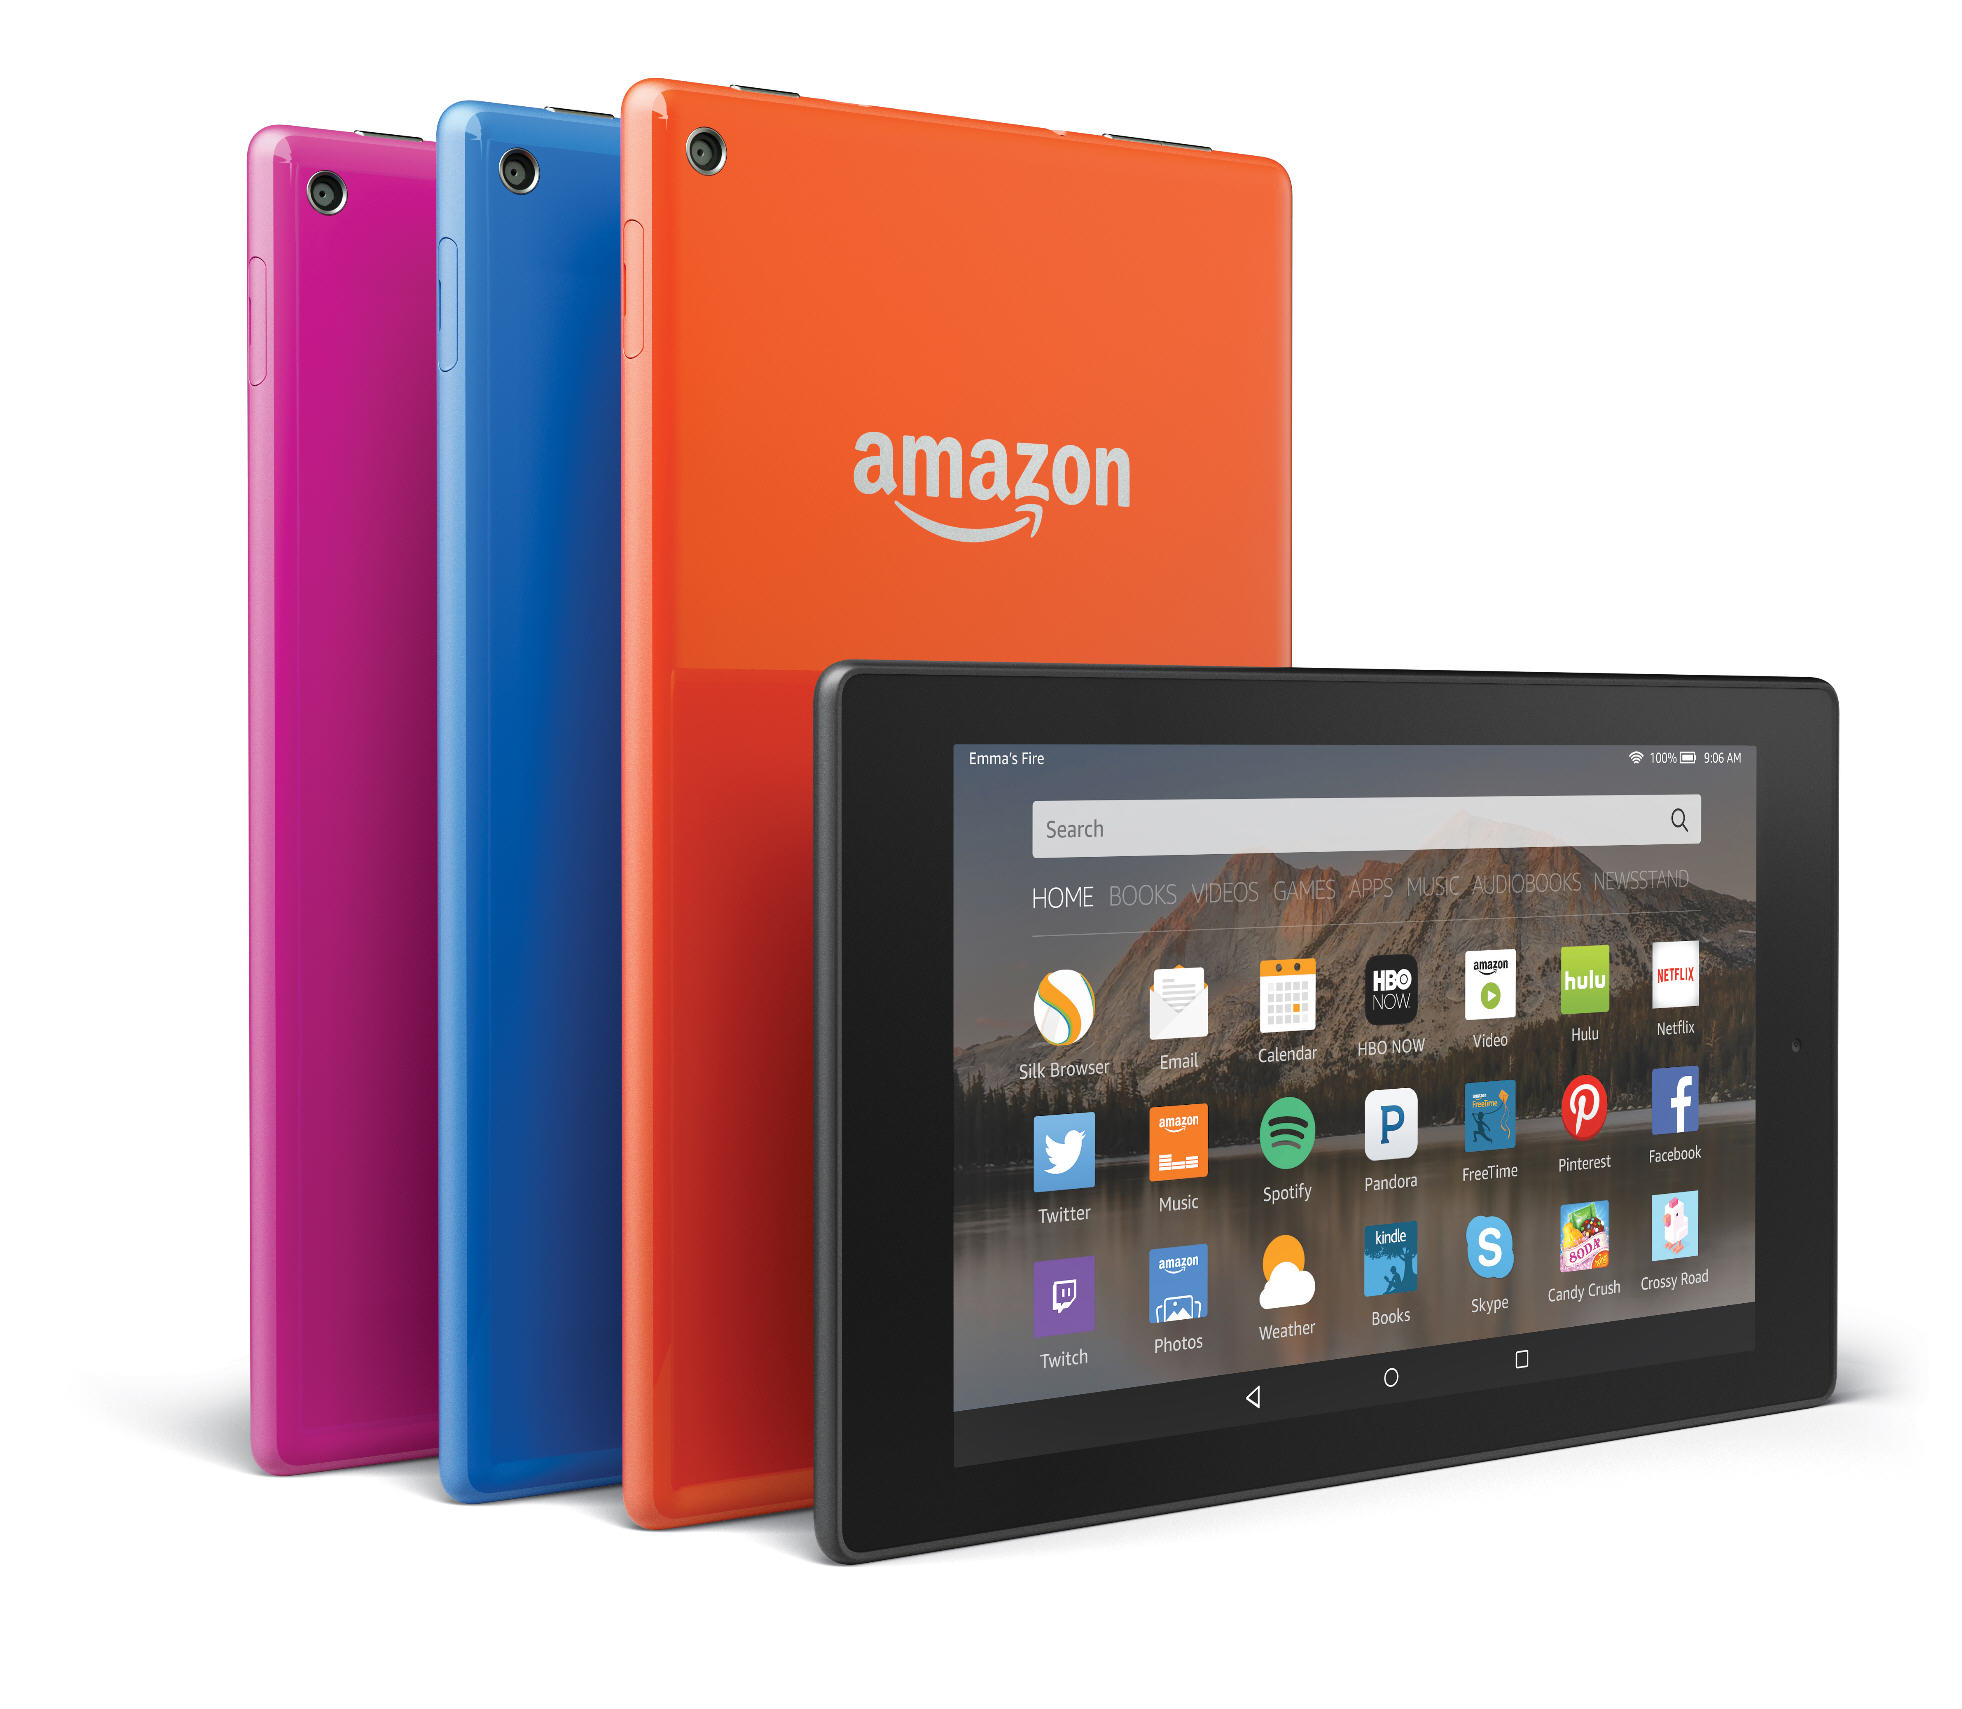 Amazon announces three new tablets -- Fire HD, Fire, and